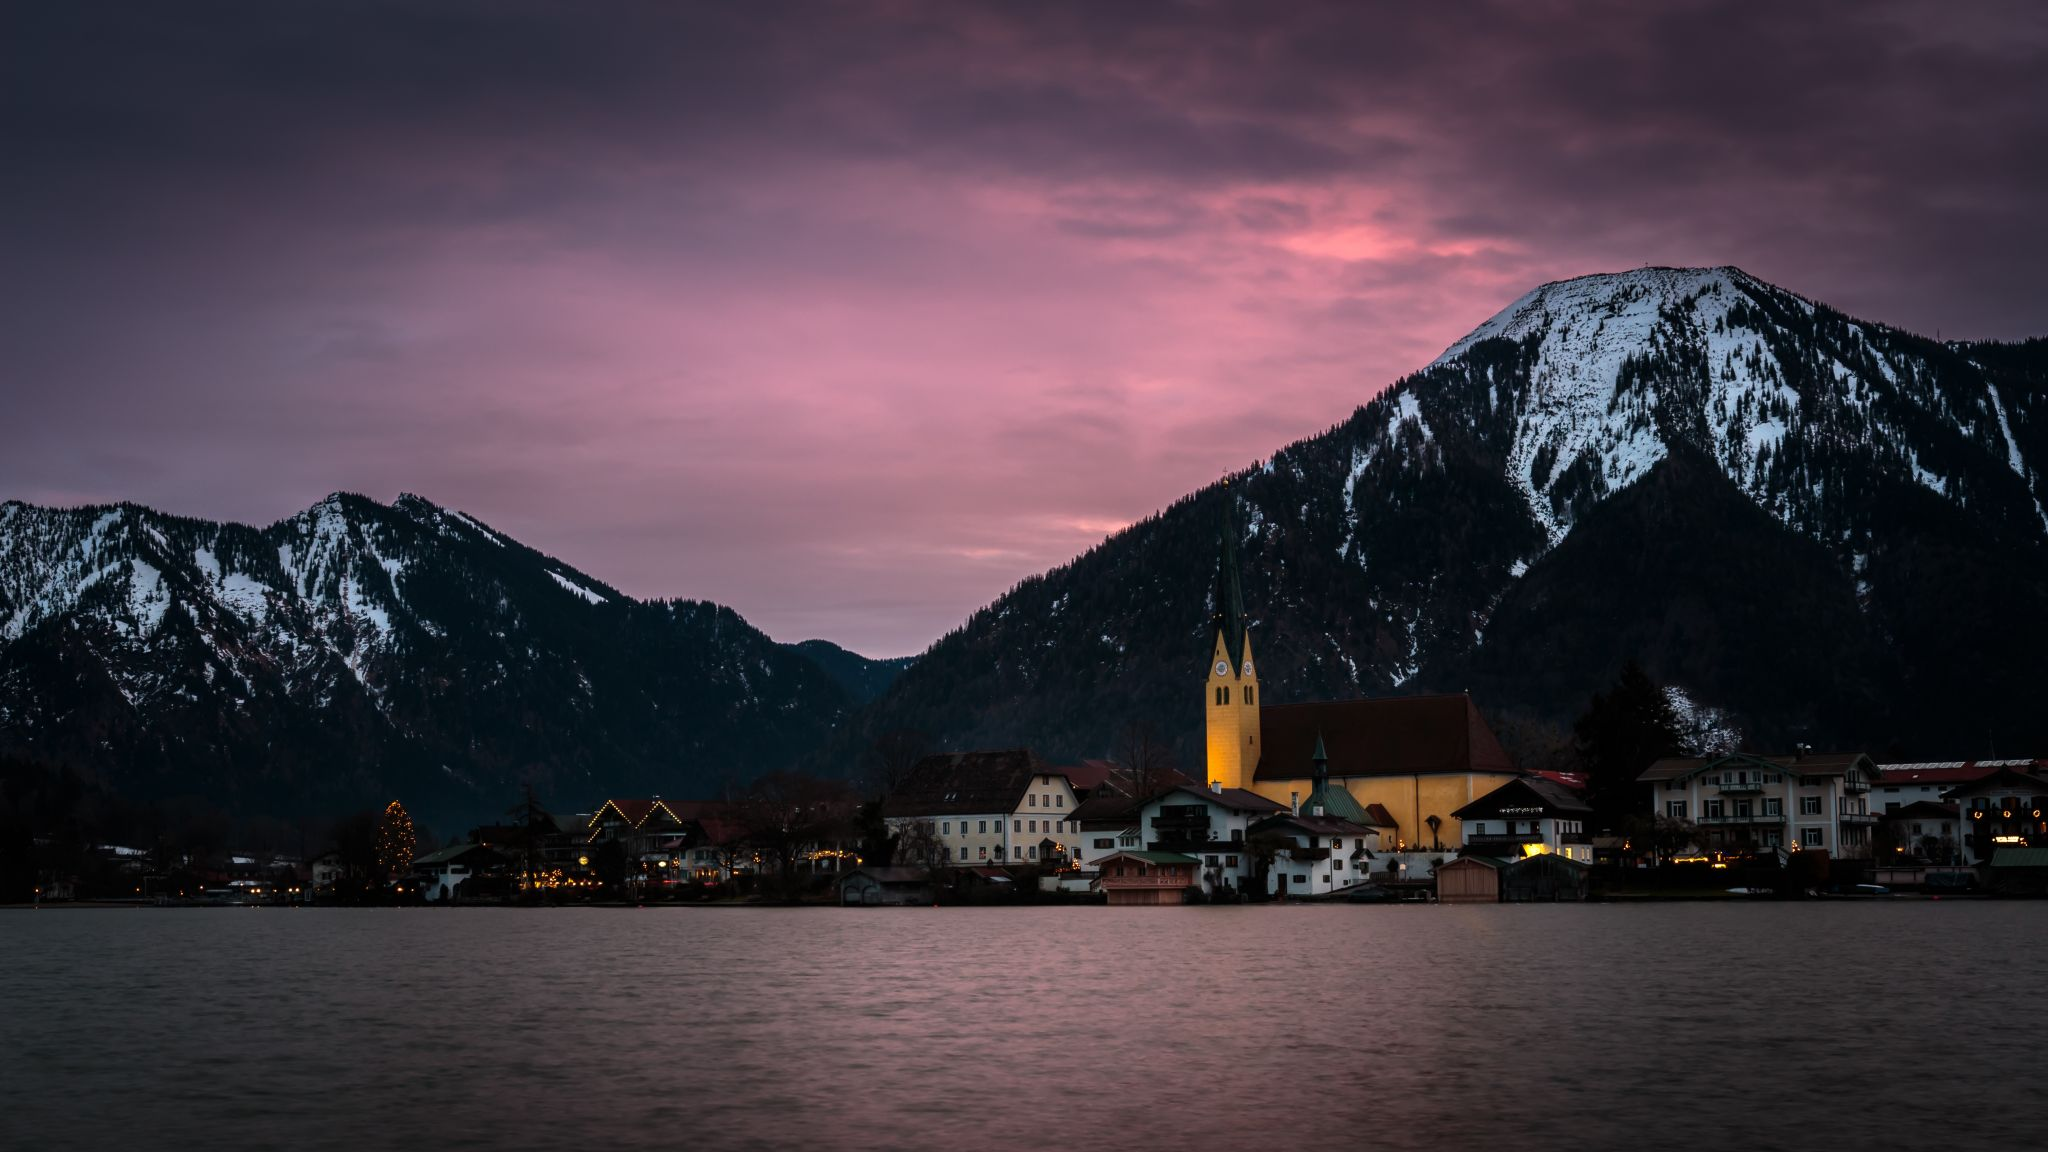 St. Laurentius (Rottach-Egern), Germany